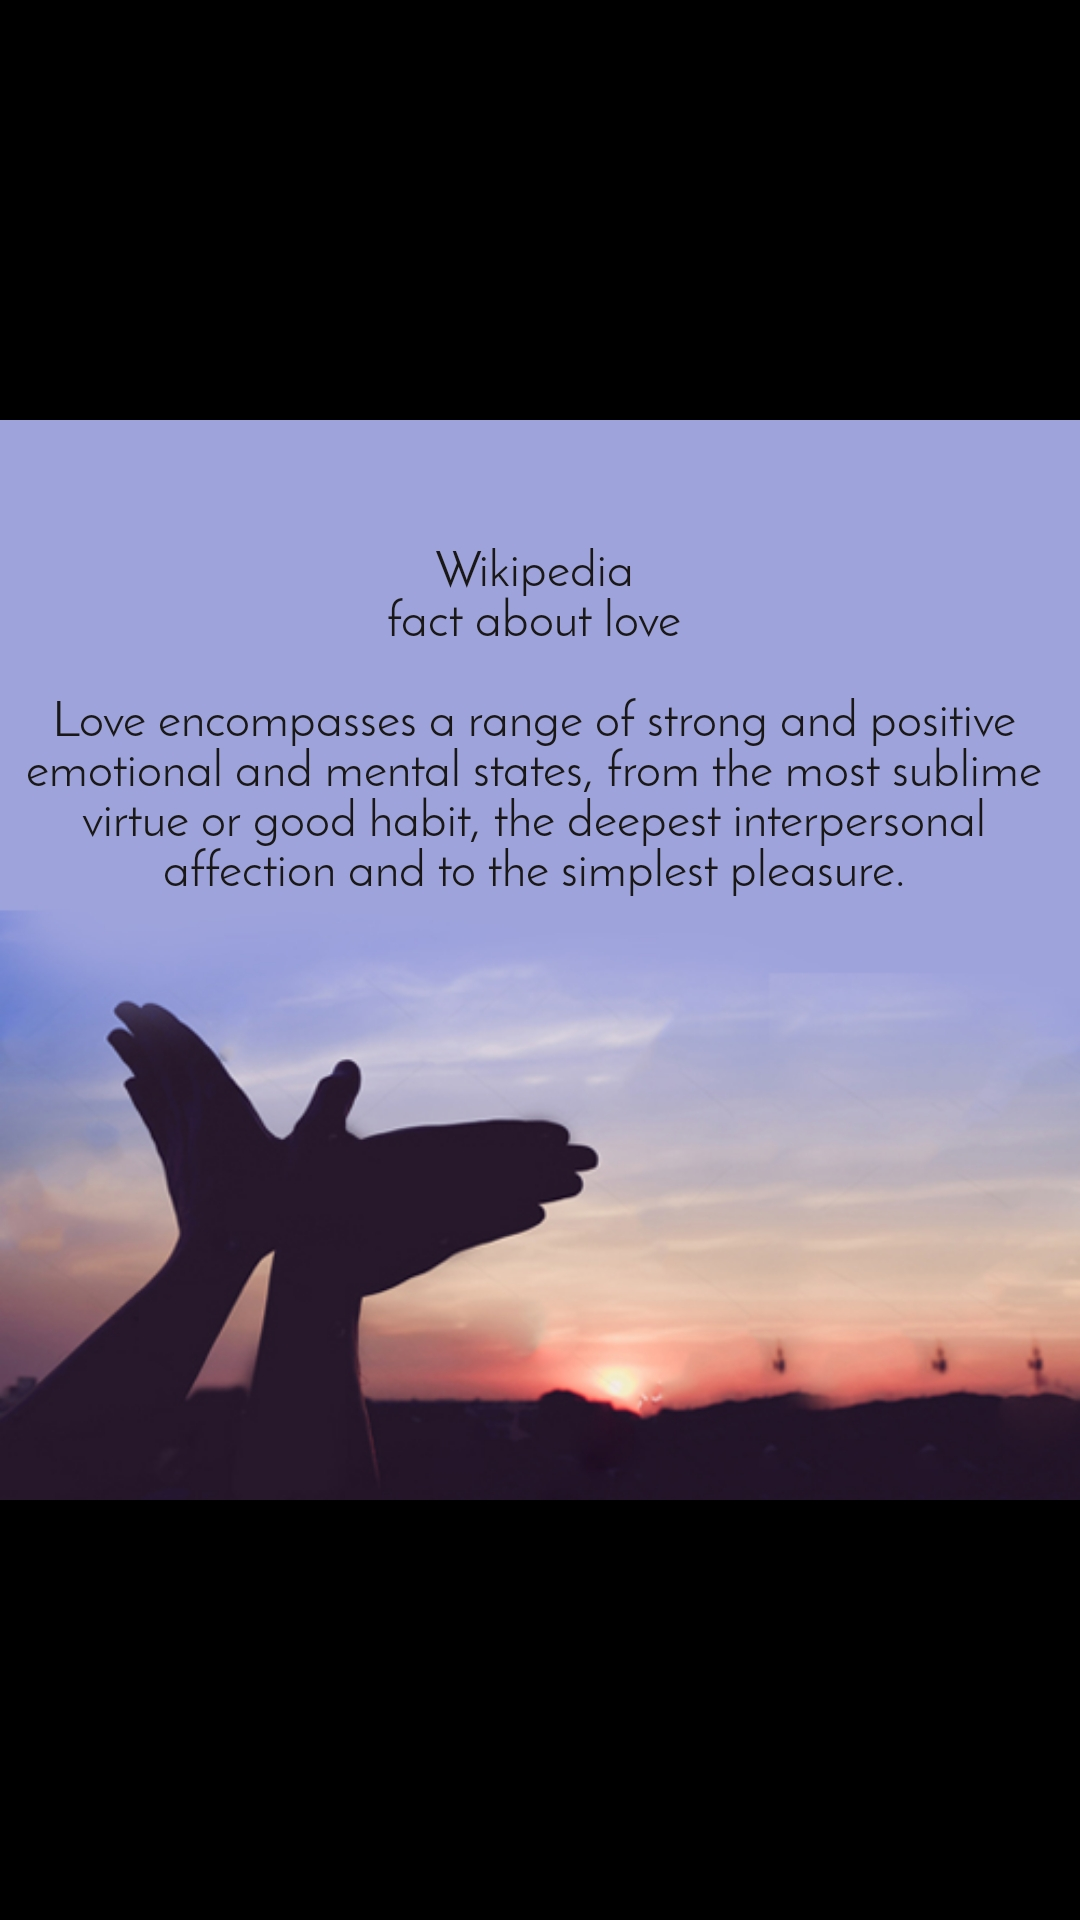 Wikipedia fact about love  Love encompasses a range of strong and positive emotional and mental states, from the most sublime virtue or good habit, the deepest interpersonal affection and to the simplest pleasure.